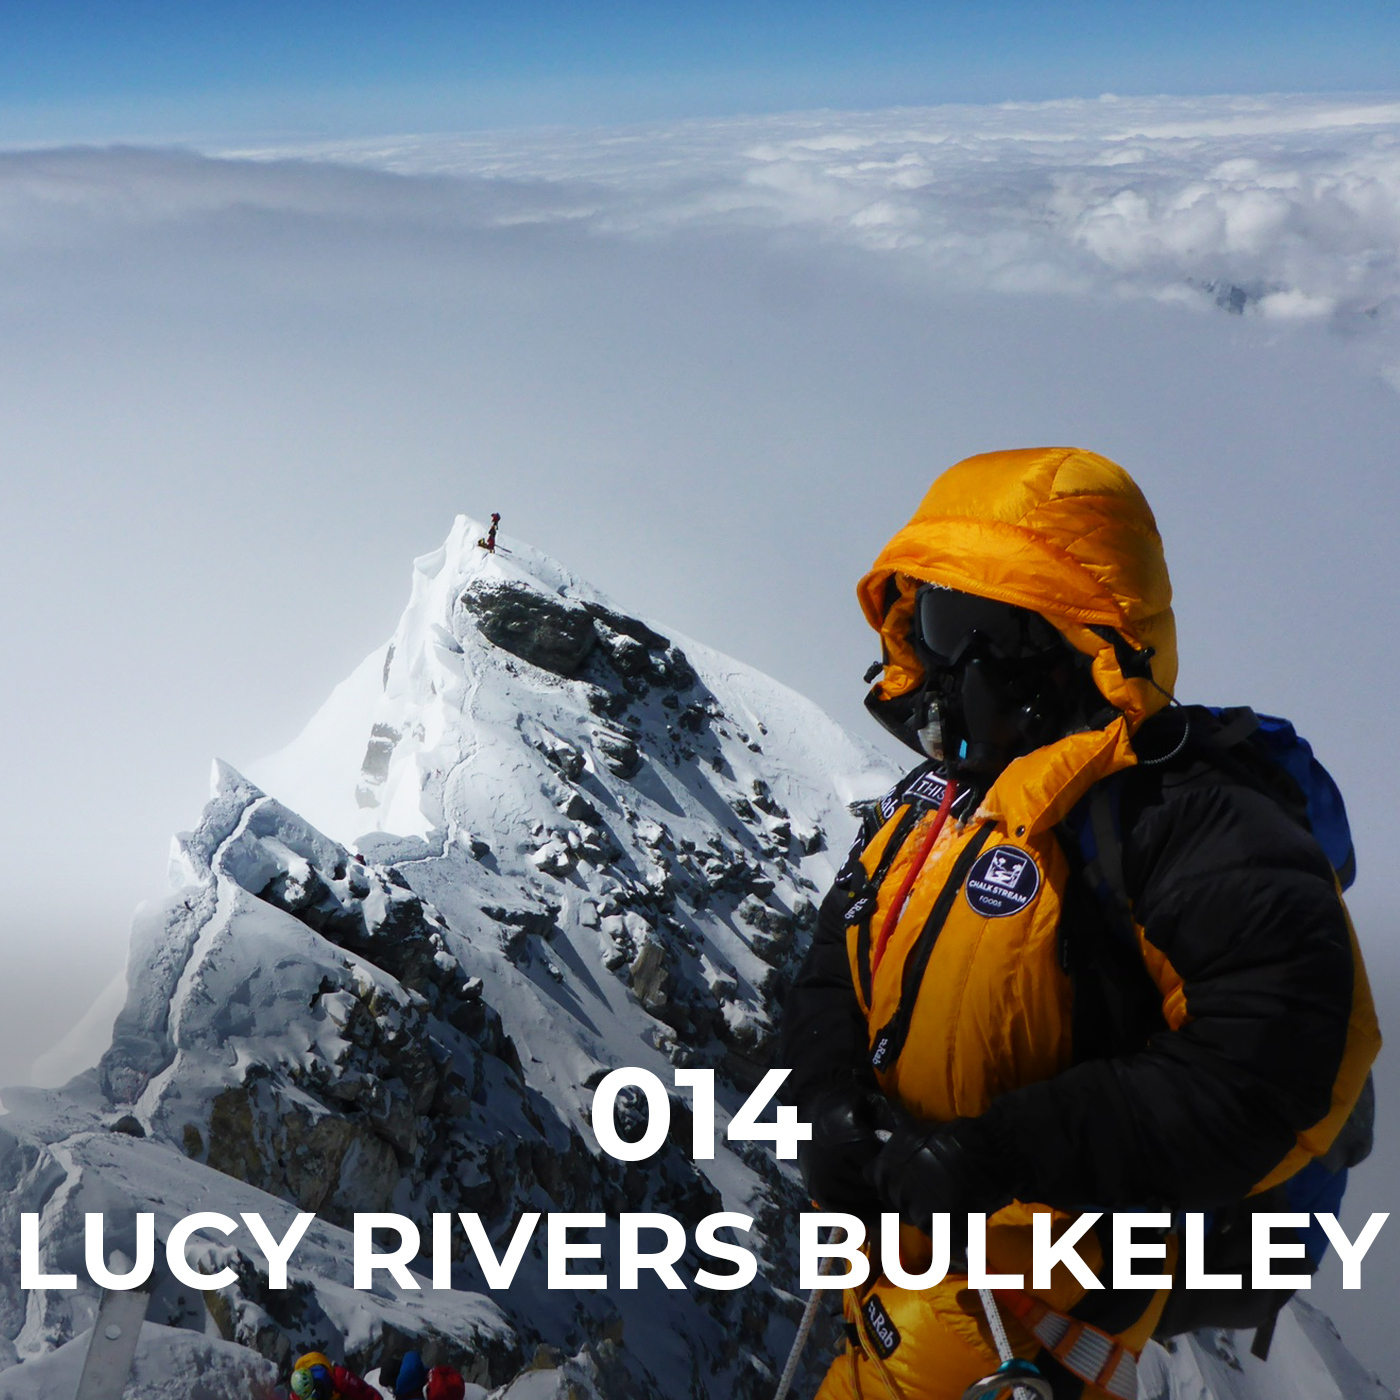 Lucy-Rivers-Bulkeley